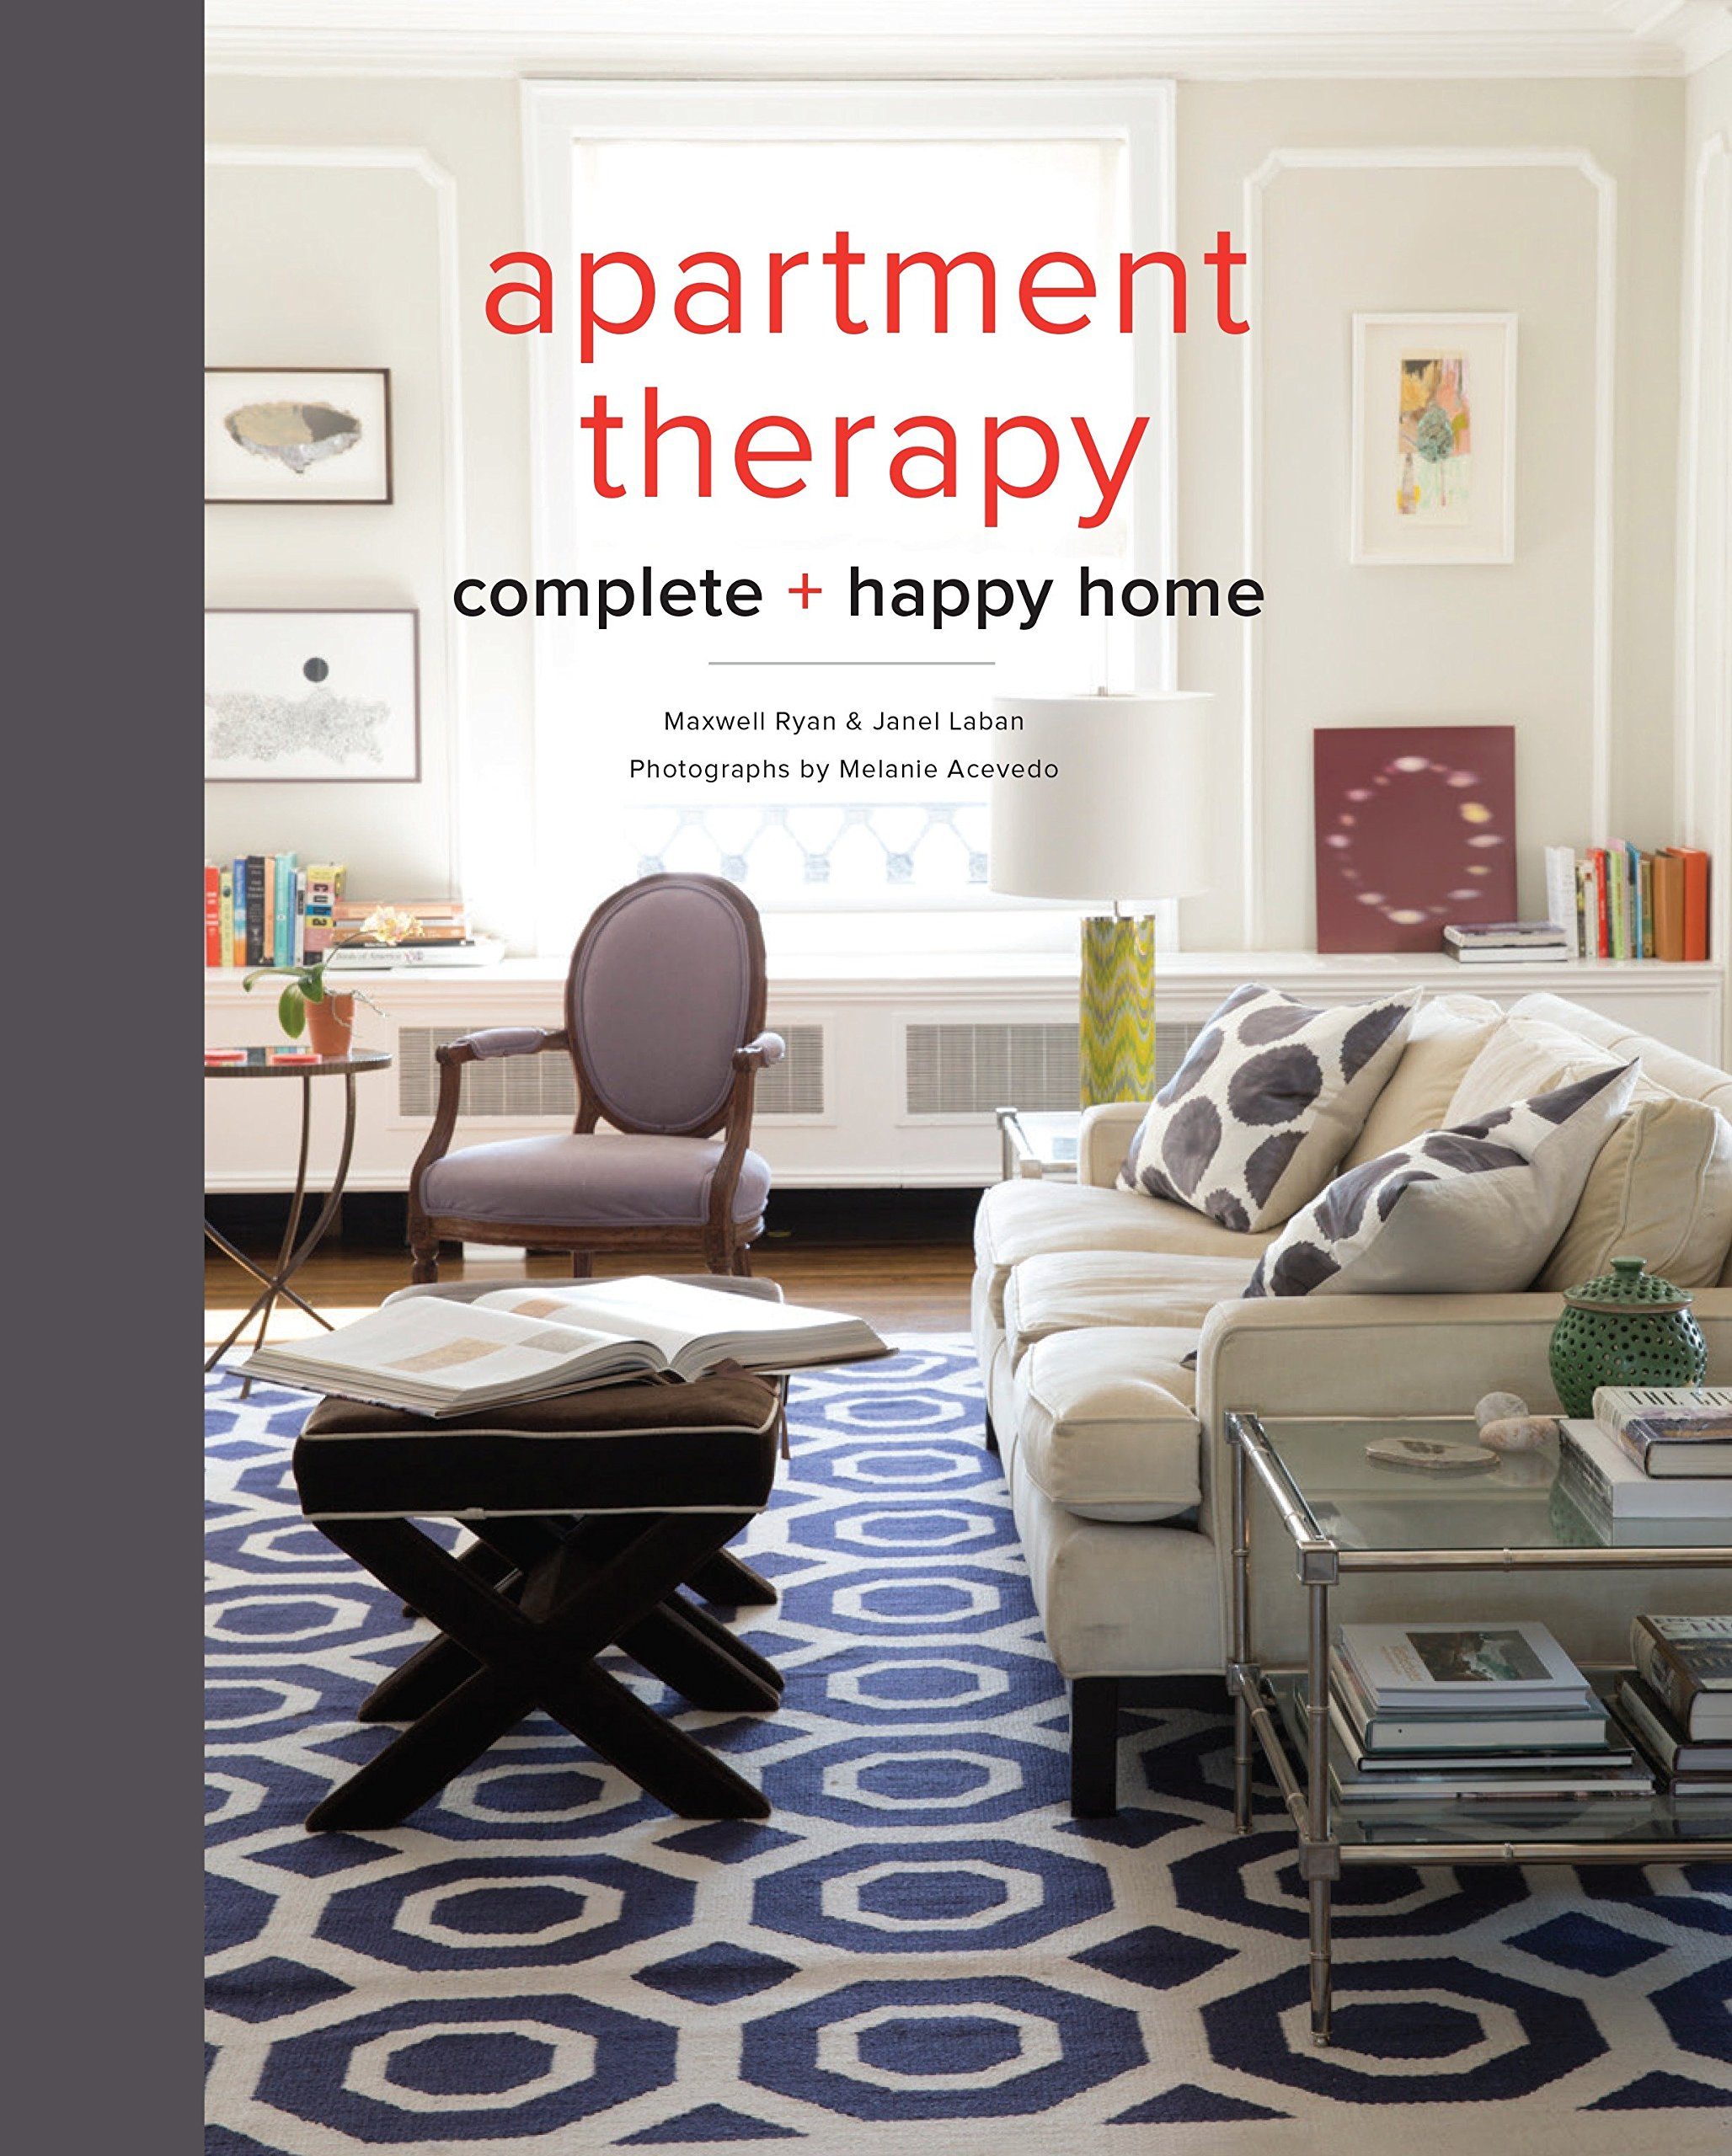 Apartment therapy office Creative Apartment Therapy Complete And Happy Home Maxwell Ryan Janel Laban Melanie Acevedo 9780770434458 Amazoncom Books Amazoncom Apartment Therapy Complete And Happy Home Maxwell Ryan Janel Laban